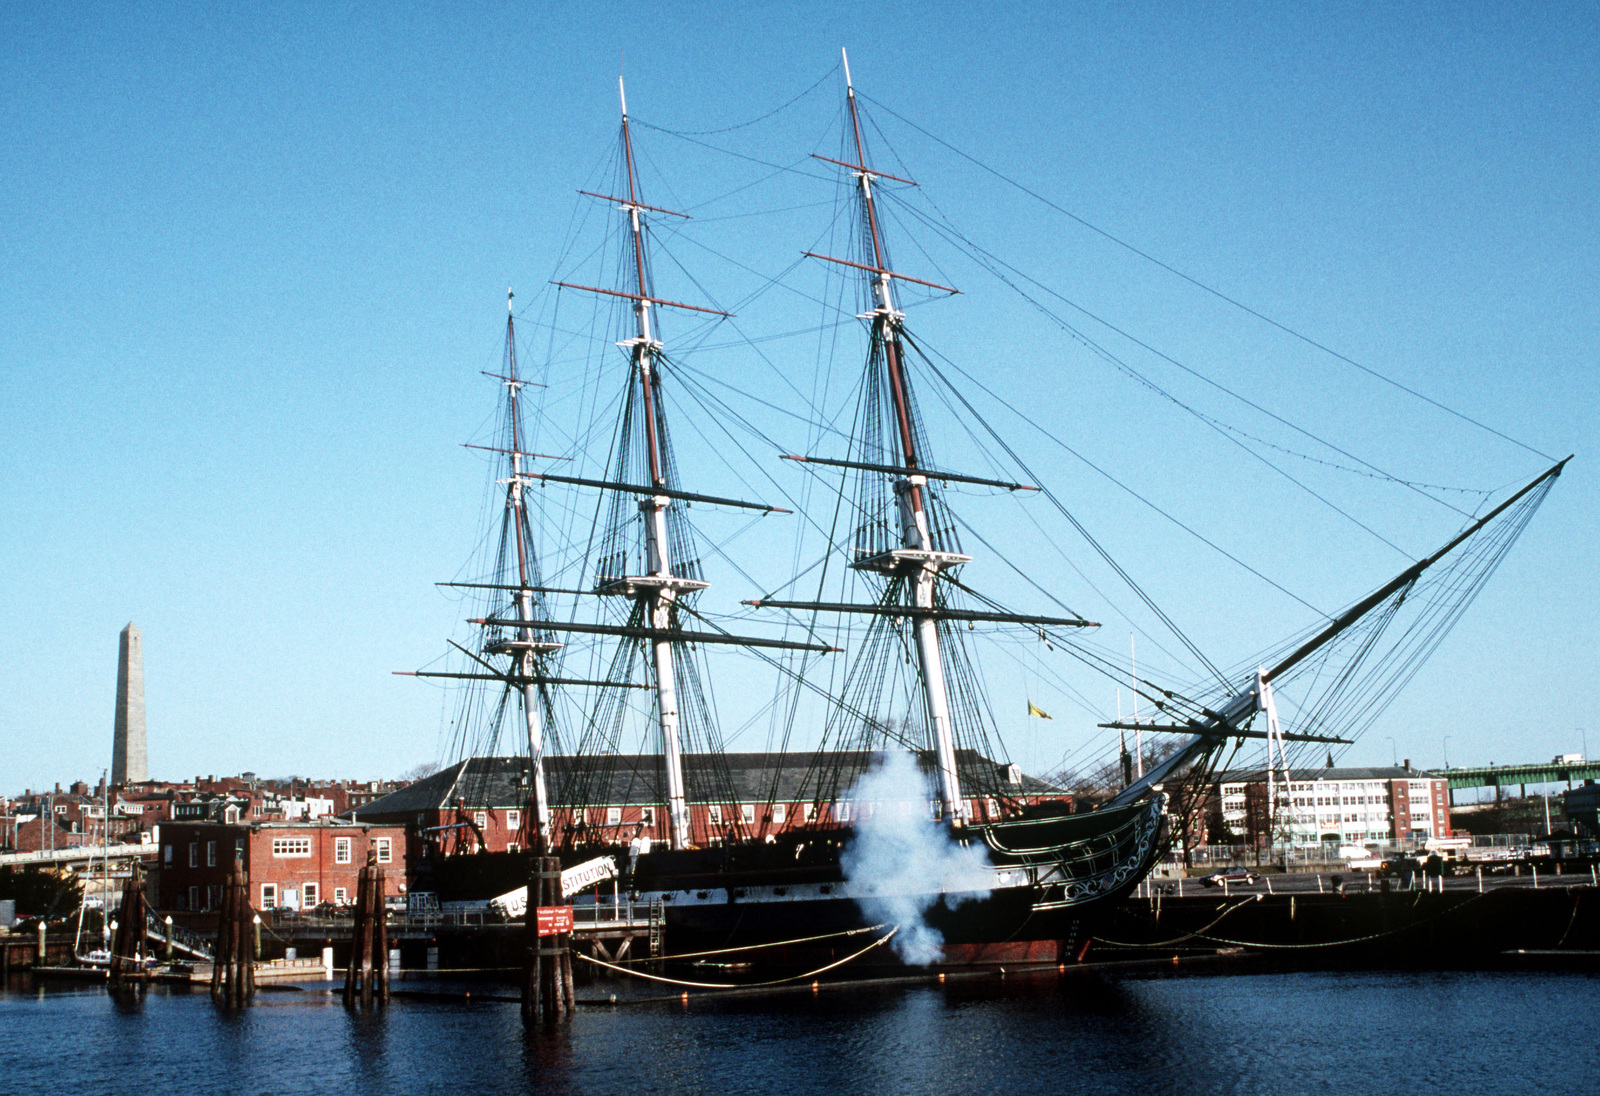 The sail frigate USS CONSTITUTION, the Navy's oldest commissioned warship, fires a single cannon as the U.S. flag is raised at morning colors. In the background, left, is the Bunker Hill monument